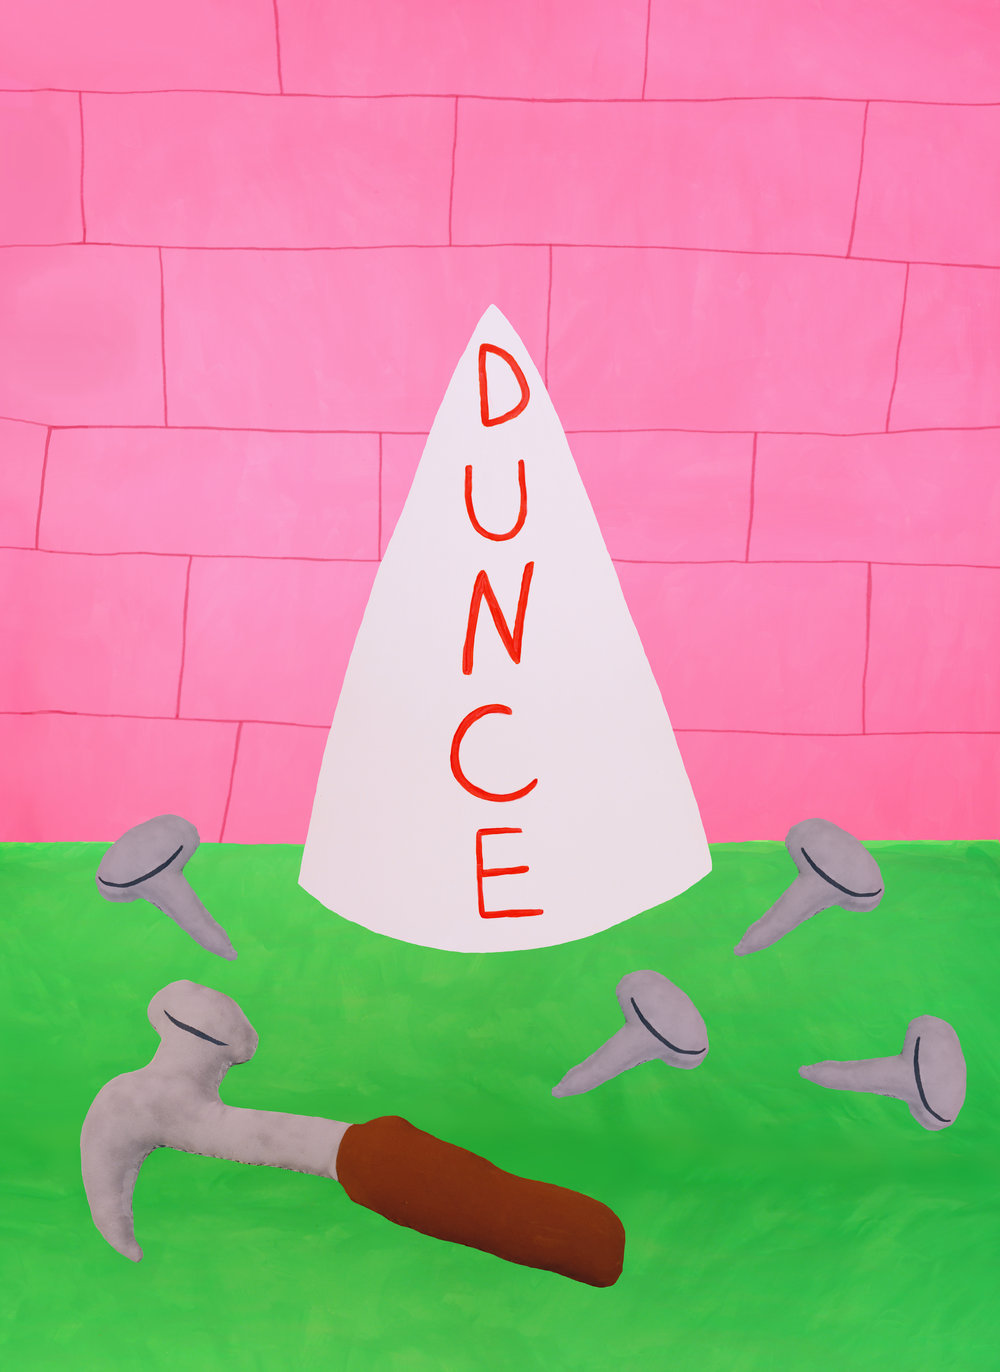 Dunce Cap at the Wall